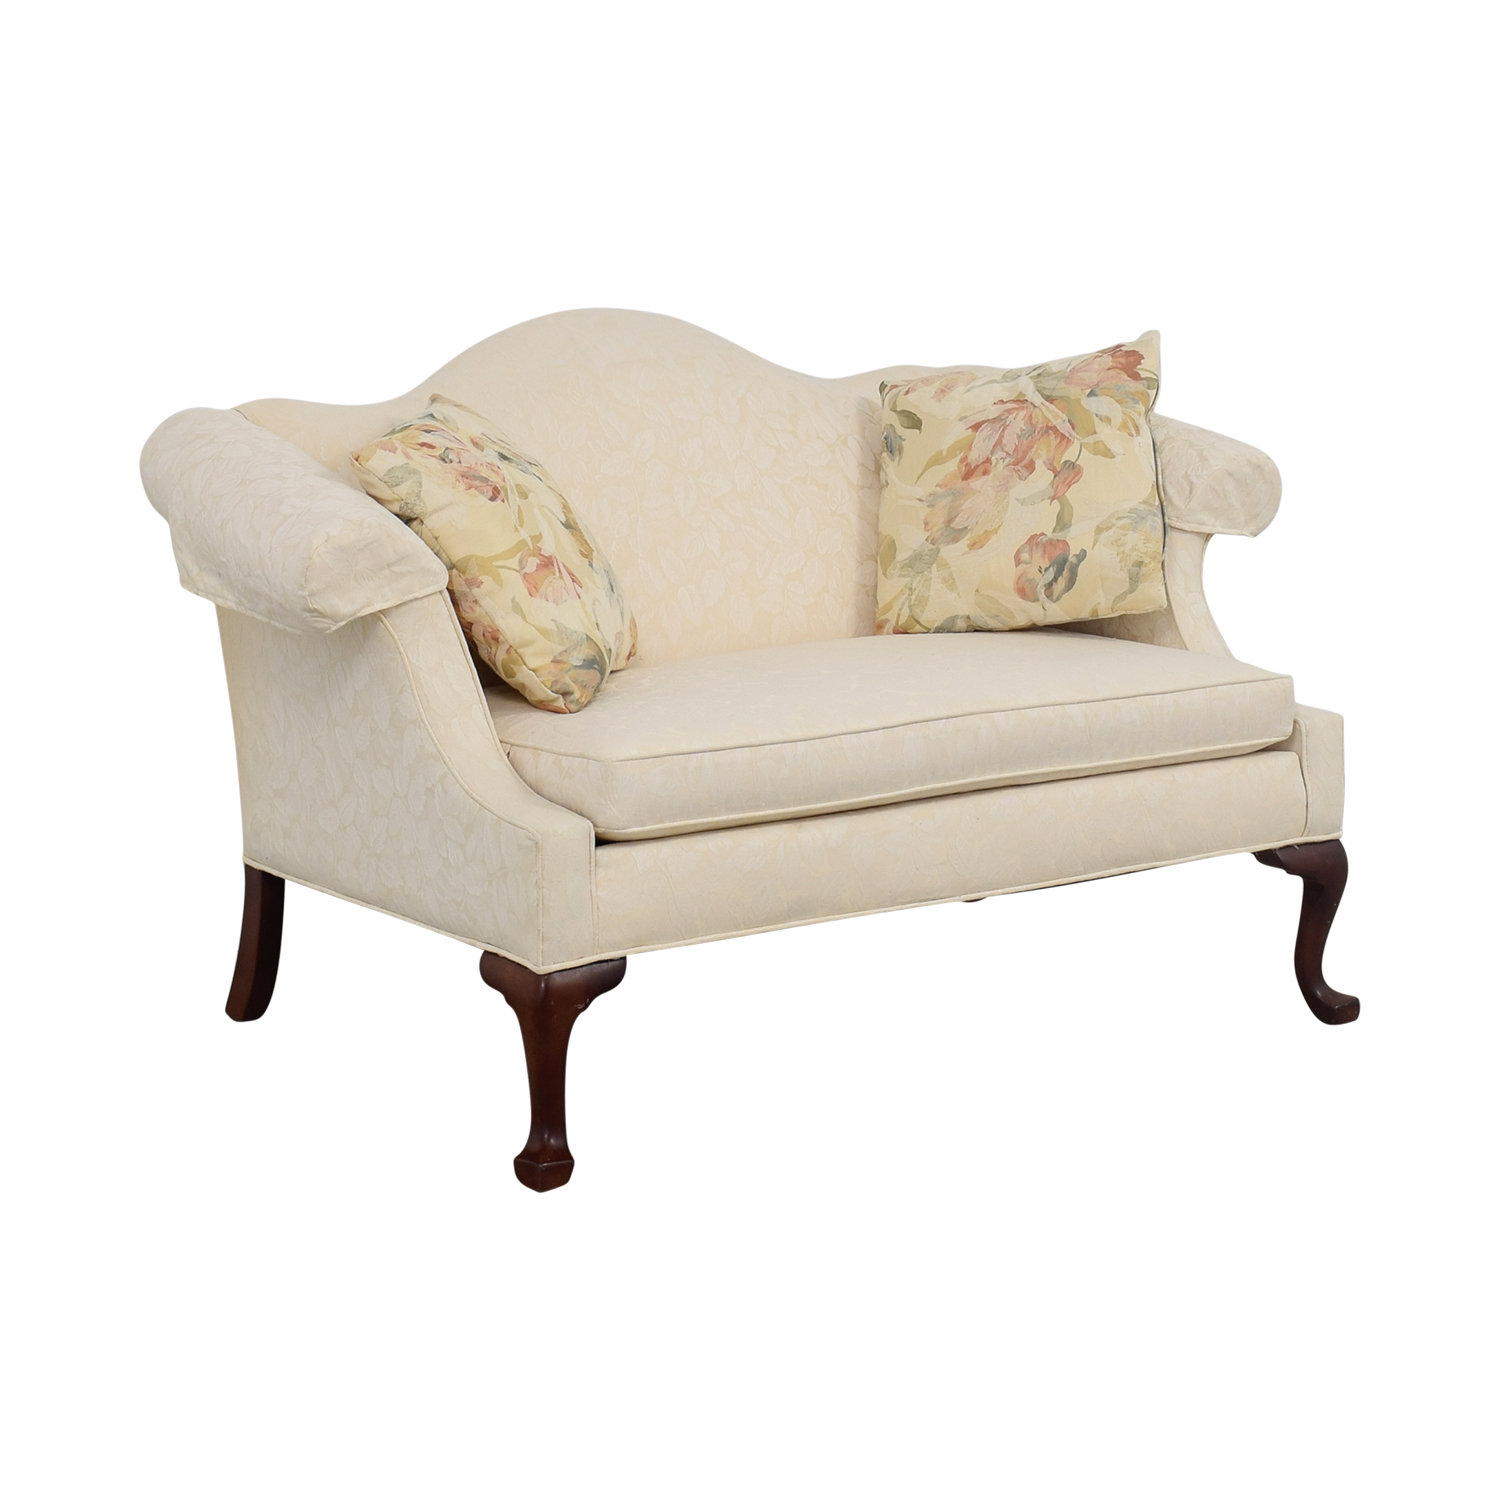 Ethan Allen White Love Seat with Floral Pillows sale